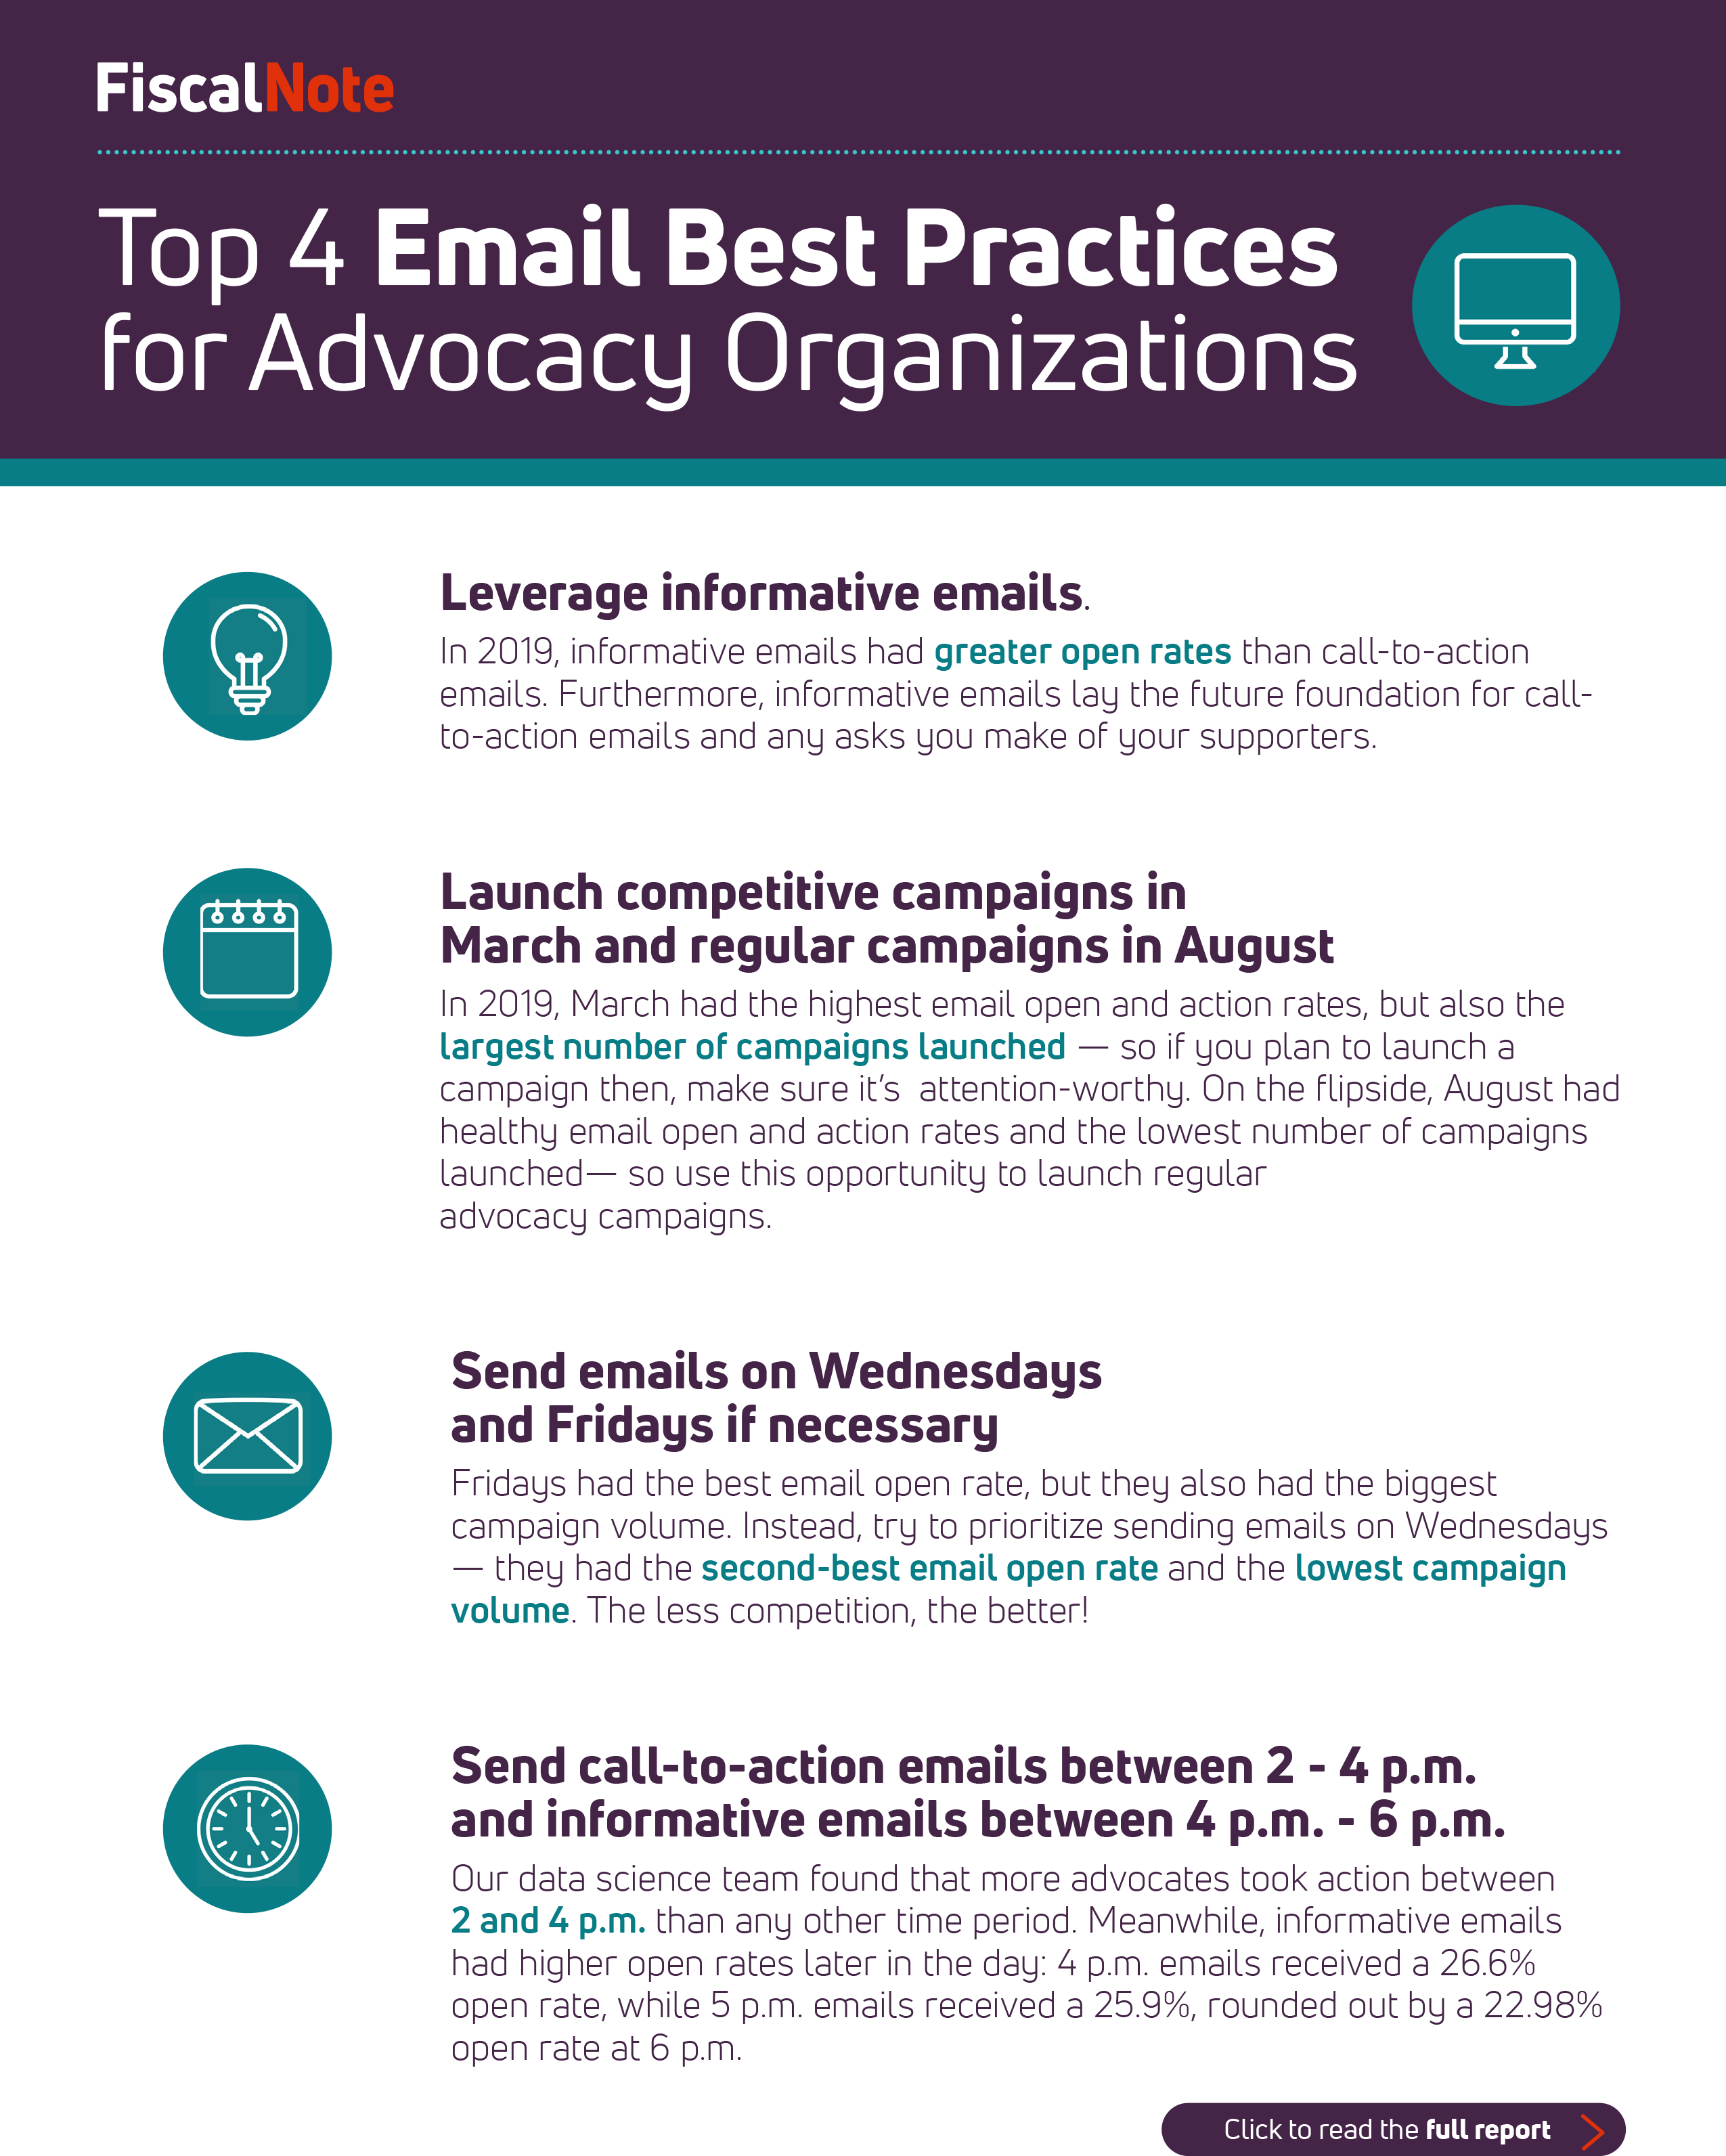 FiscalNote Advocacy Email Best Practices